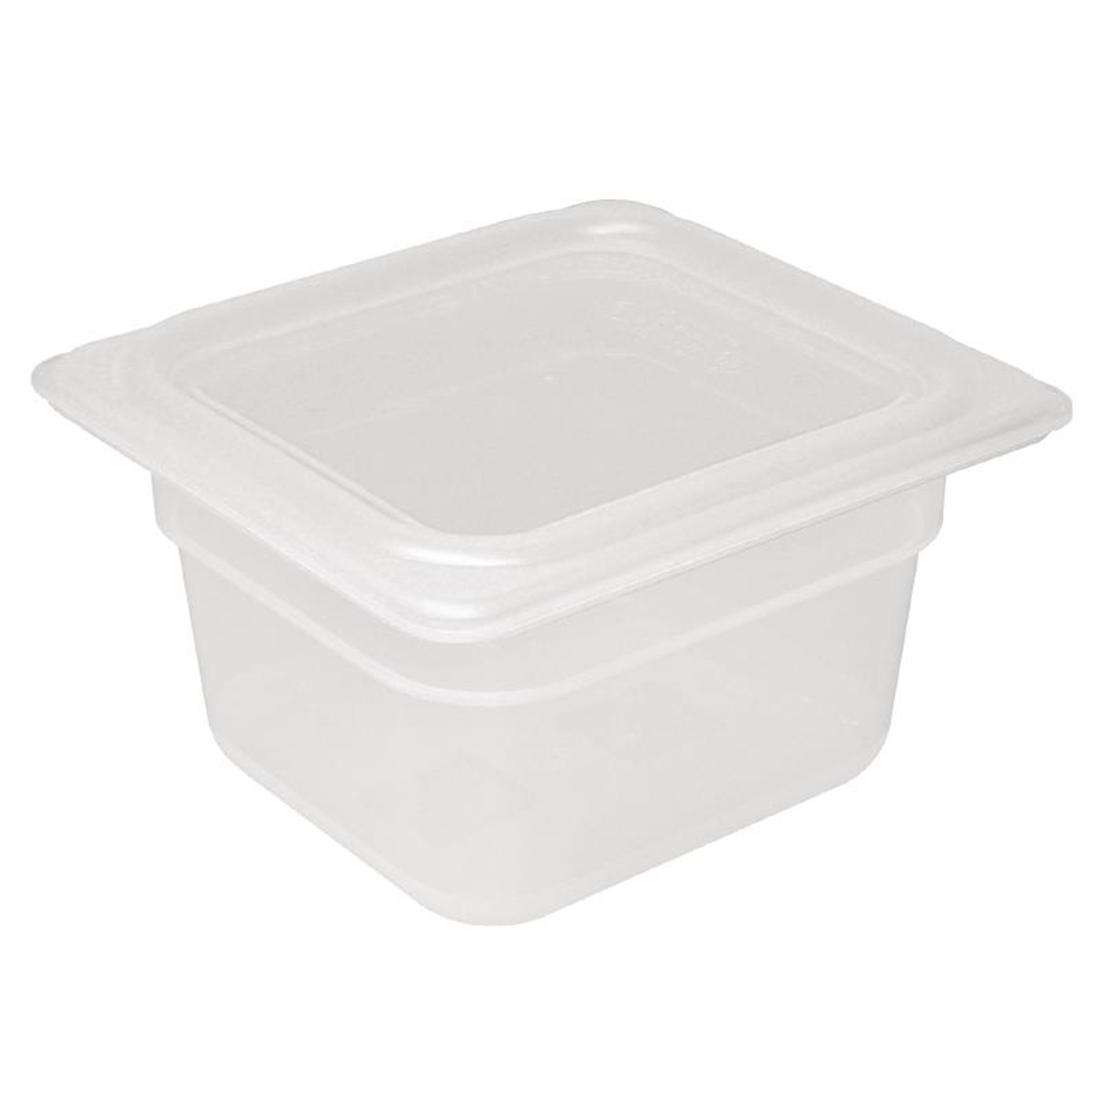 Vogue Polypropylene 1/6 Gastronorm Container with Lid 100mm - Pack of 4 - GJ526